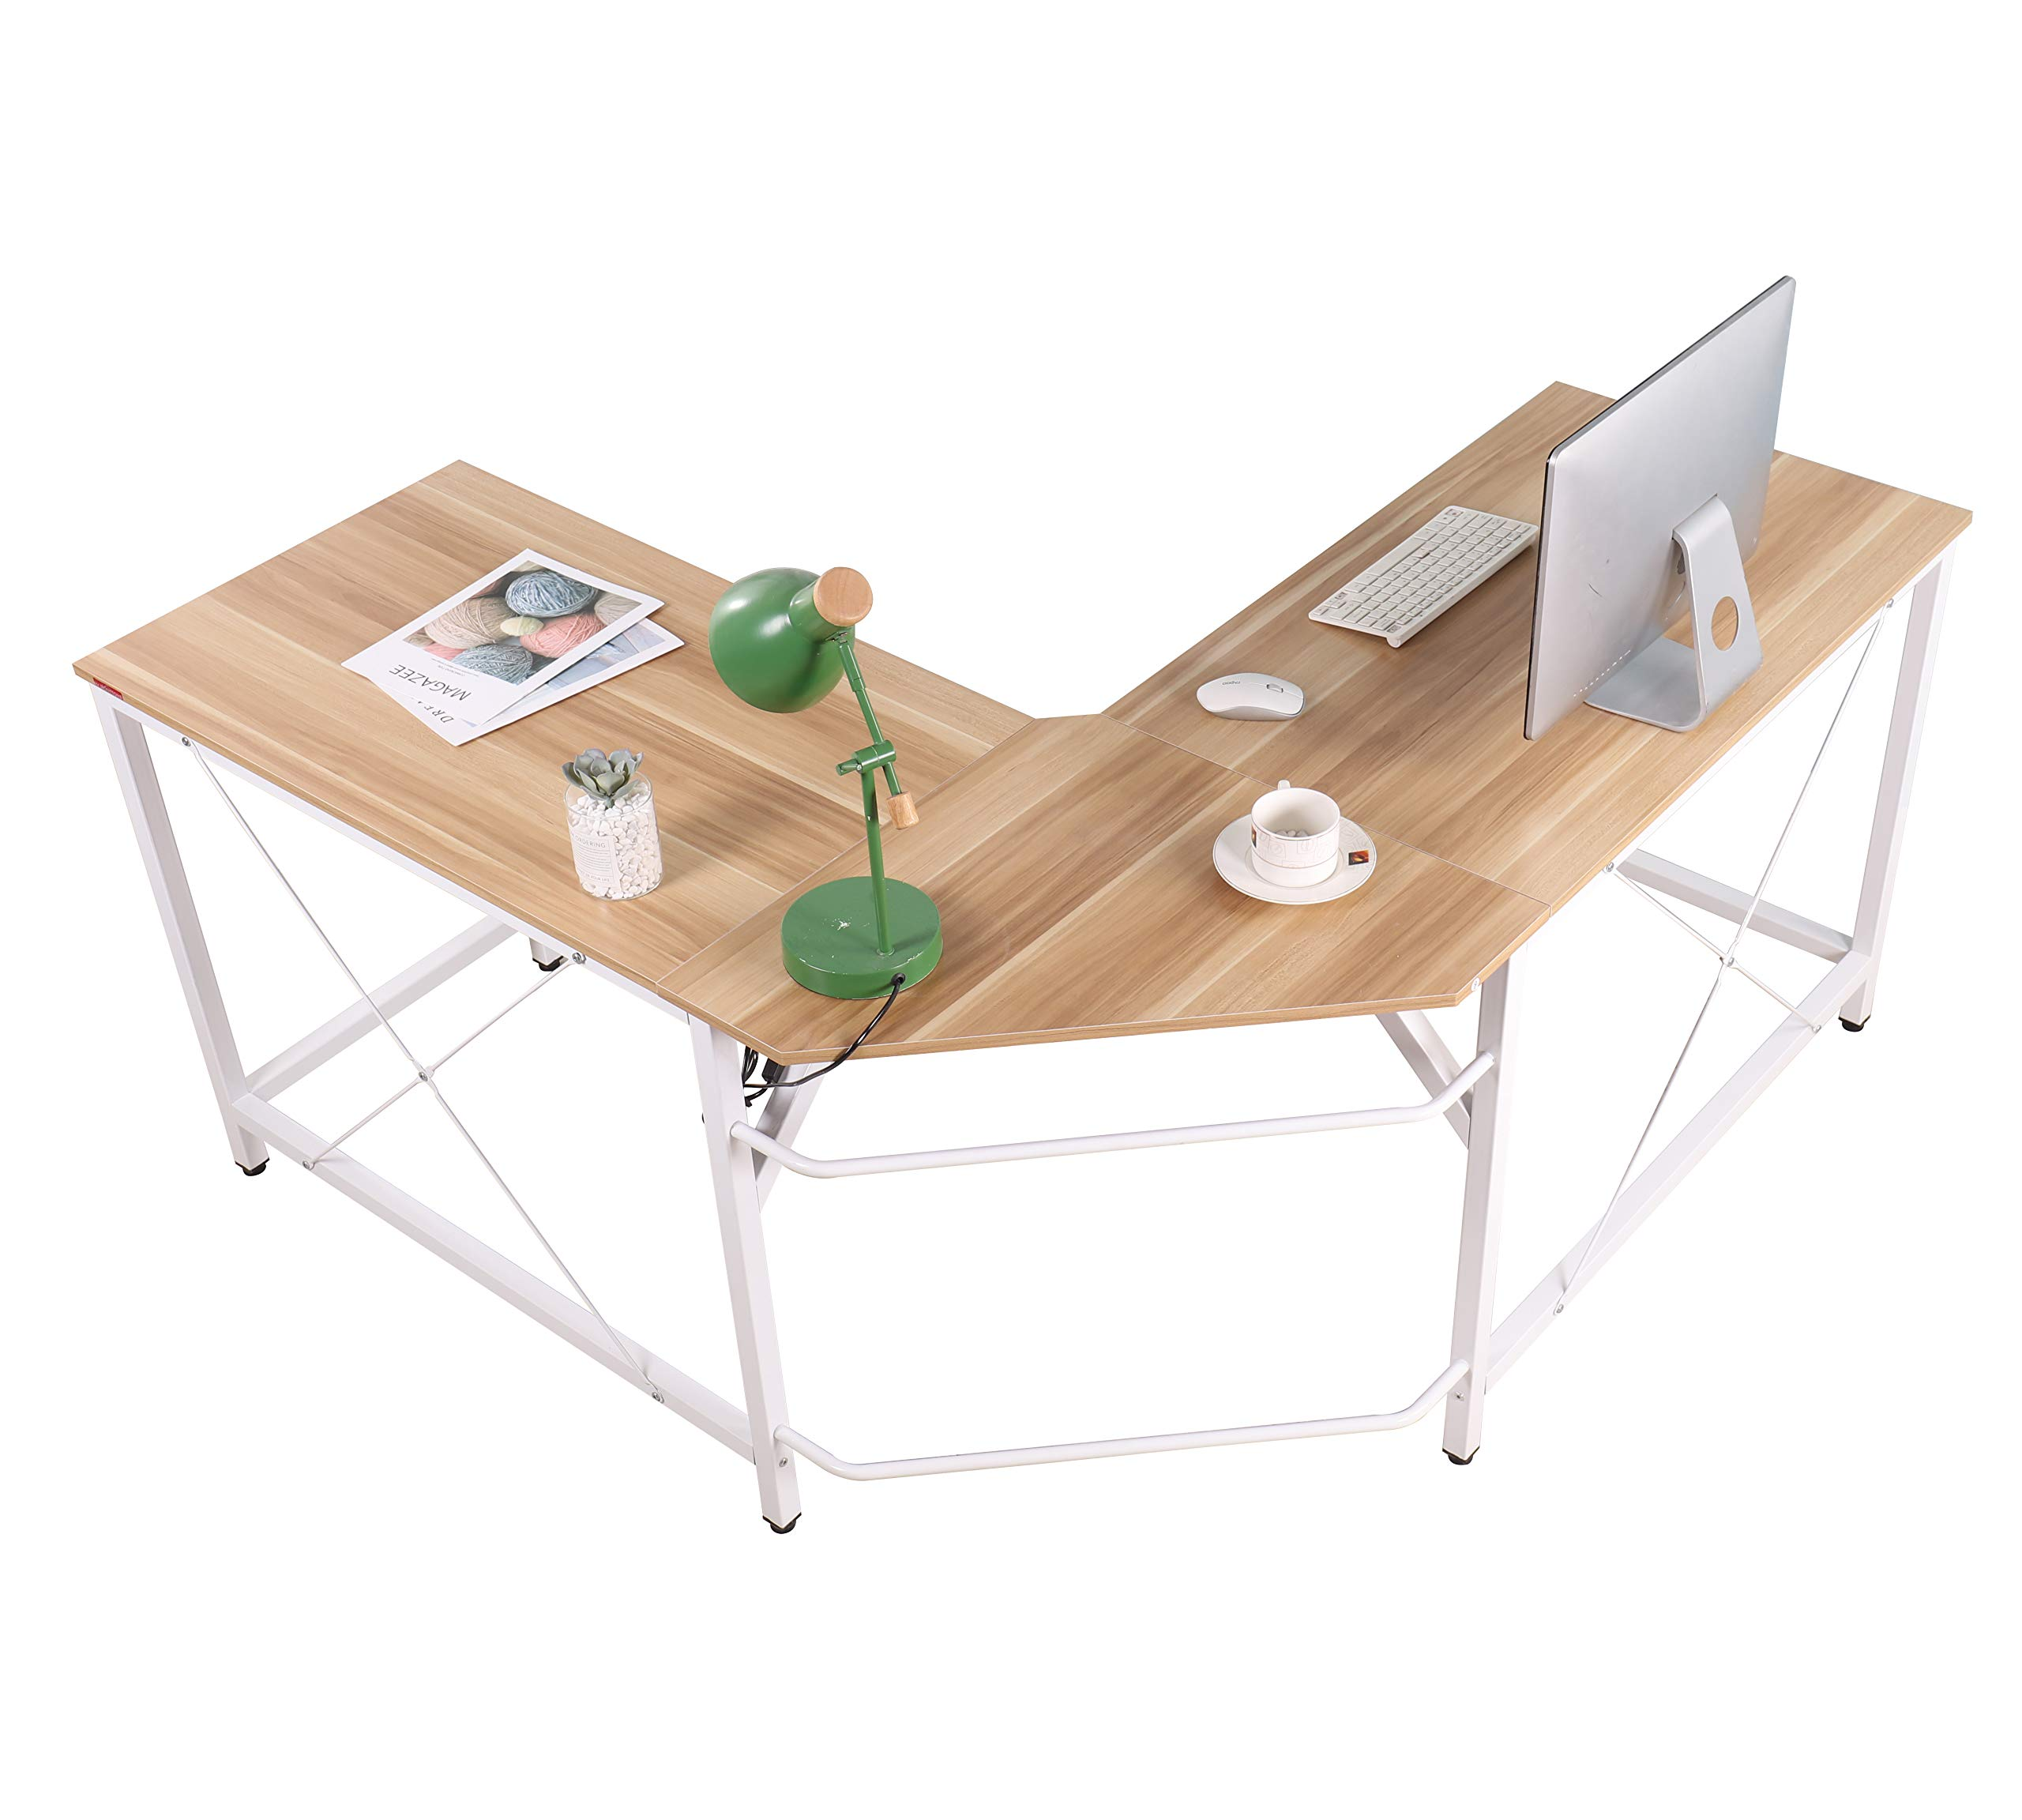 Mr IRONSTONE L-Shaped Desk Corner Table Computer Desk 59'' PC Laptop Study Writing Table Workstation for Home Office by Mr IRONSTONE